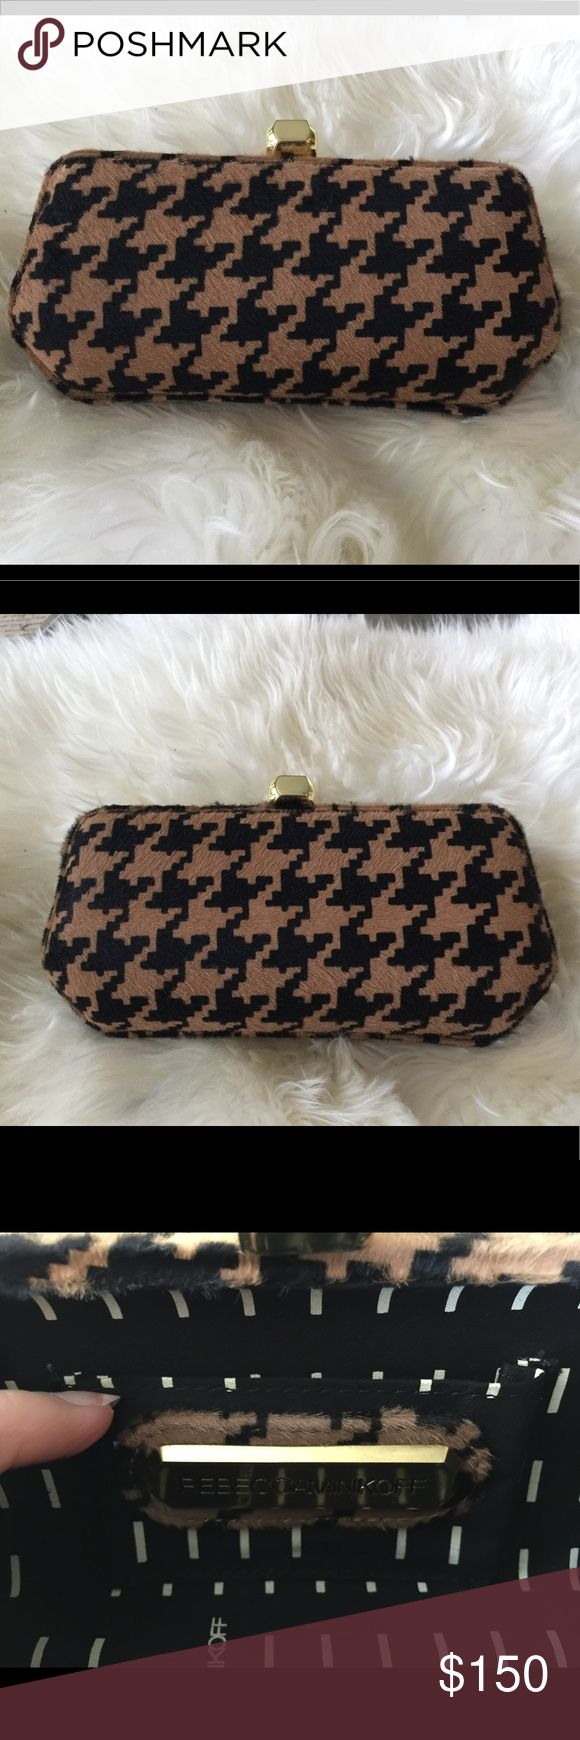 "Rebecca Minkoff minaudiere houndstooth clutch So fab! Hair on hide houndstooth print black and camel clutch. Gold clasp and strap - the strap can hod inside or you can take it off completely. Minor scratches on the clasp - see photo. 8.5"" W at the widest, 4""H, 2.25""D at the deepest. Strap hangs 22.5""L. Non smoking home. Very clean. Rebecca Minkoff Bags Clutches & Wristlets"